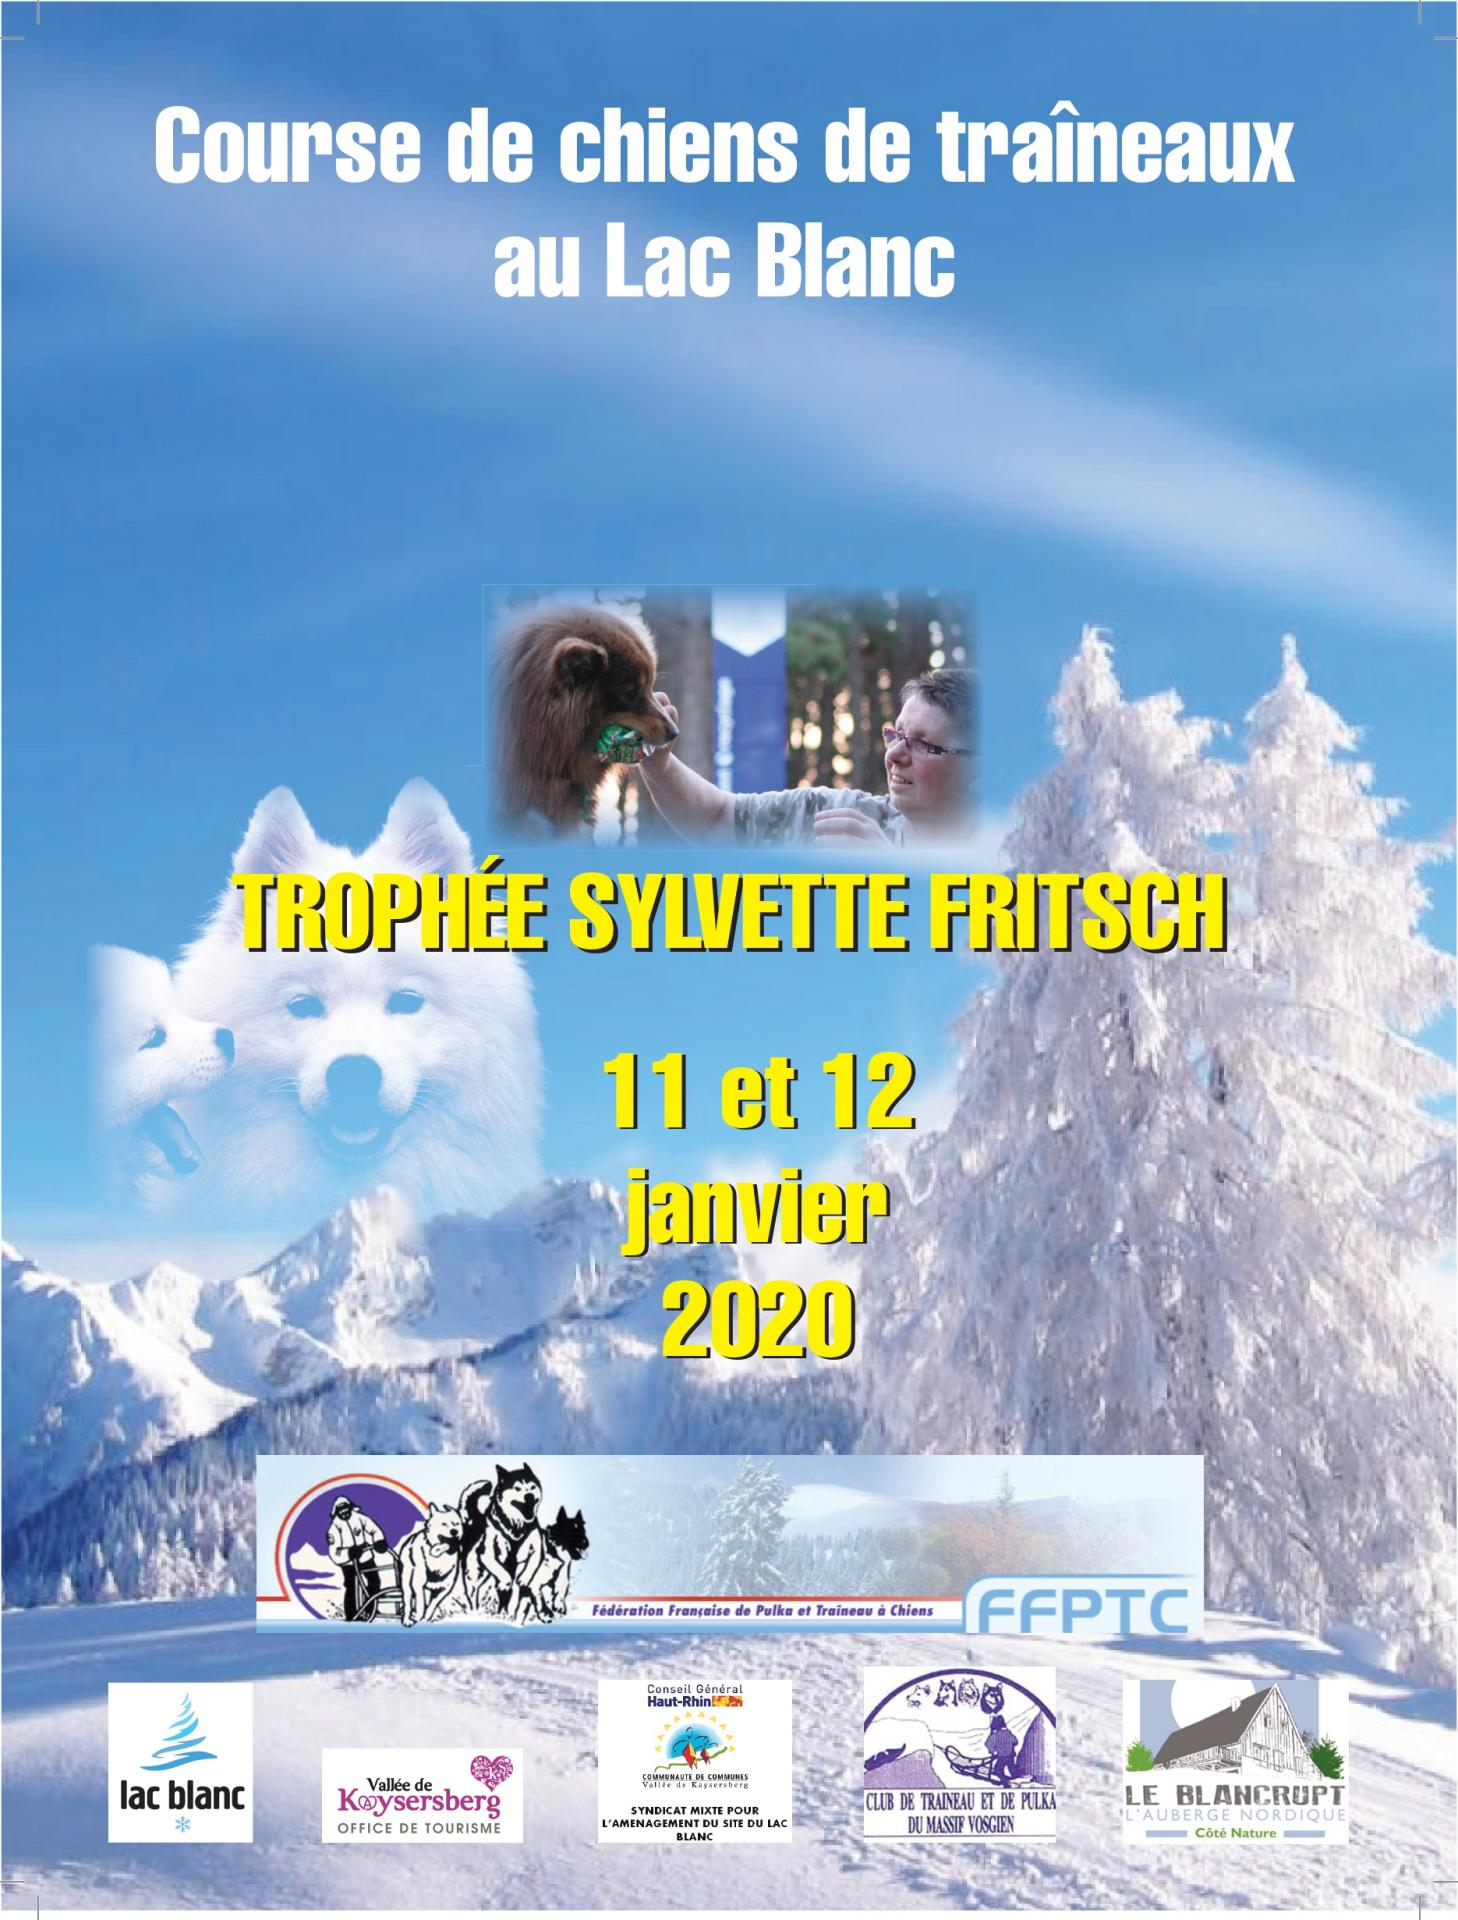 Piece jointe 30 x 40 aff lac blanc 11 12 janvier 2020 1 page 0001